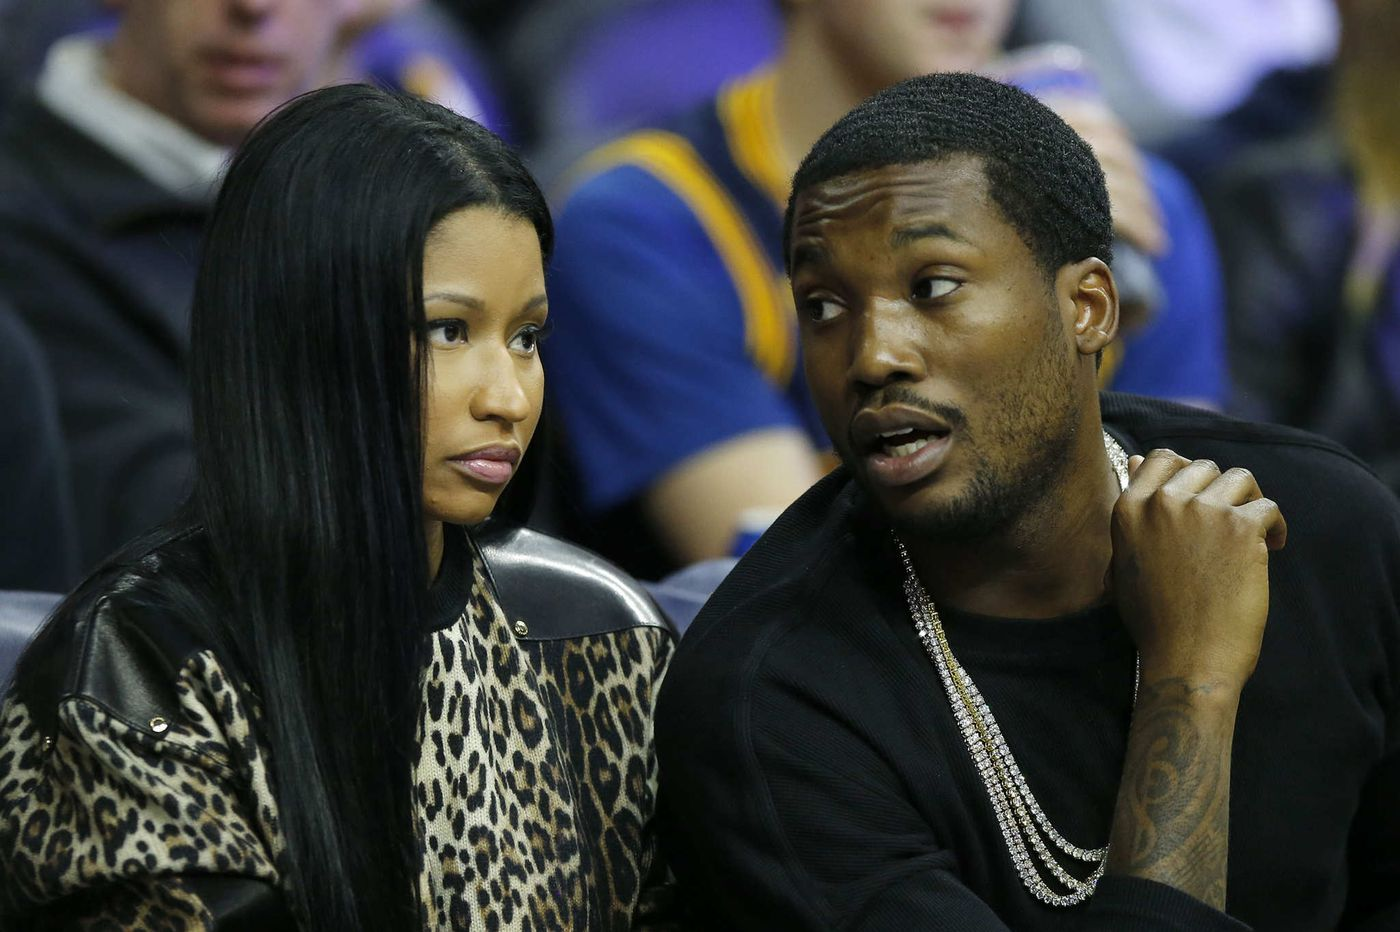 Meek Mill and Nicki Minaj reignite feud with new Twitter fight